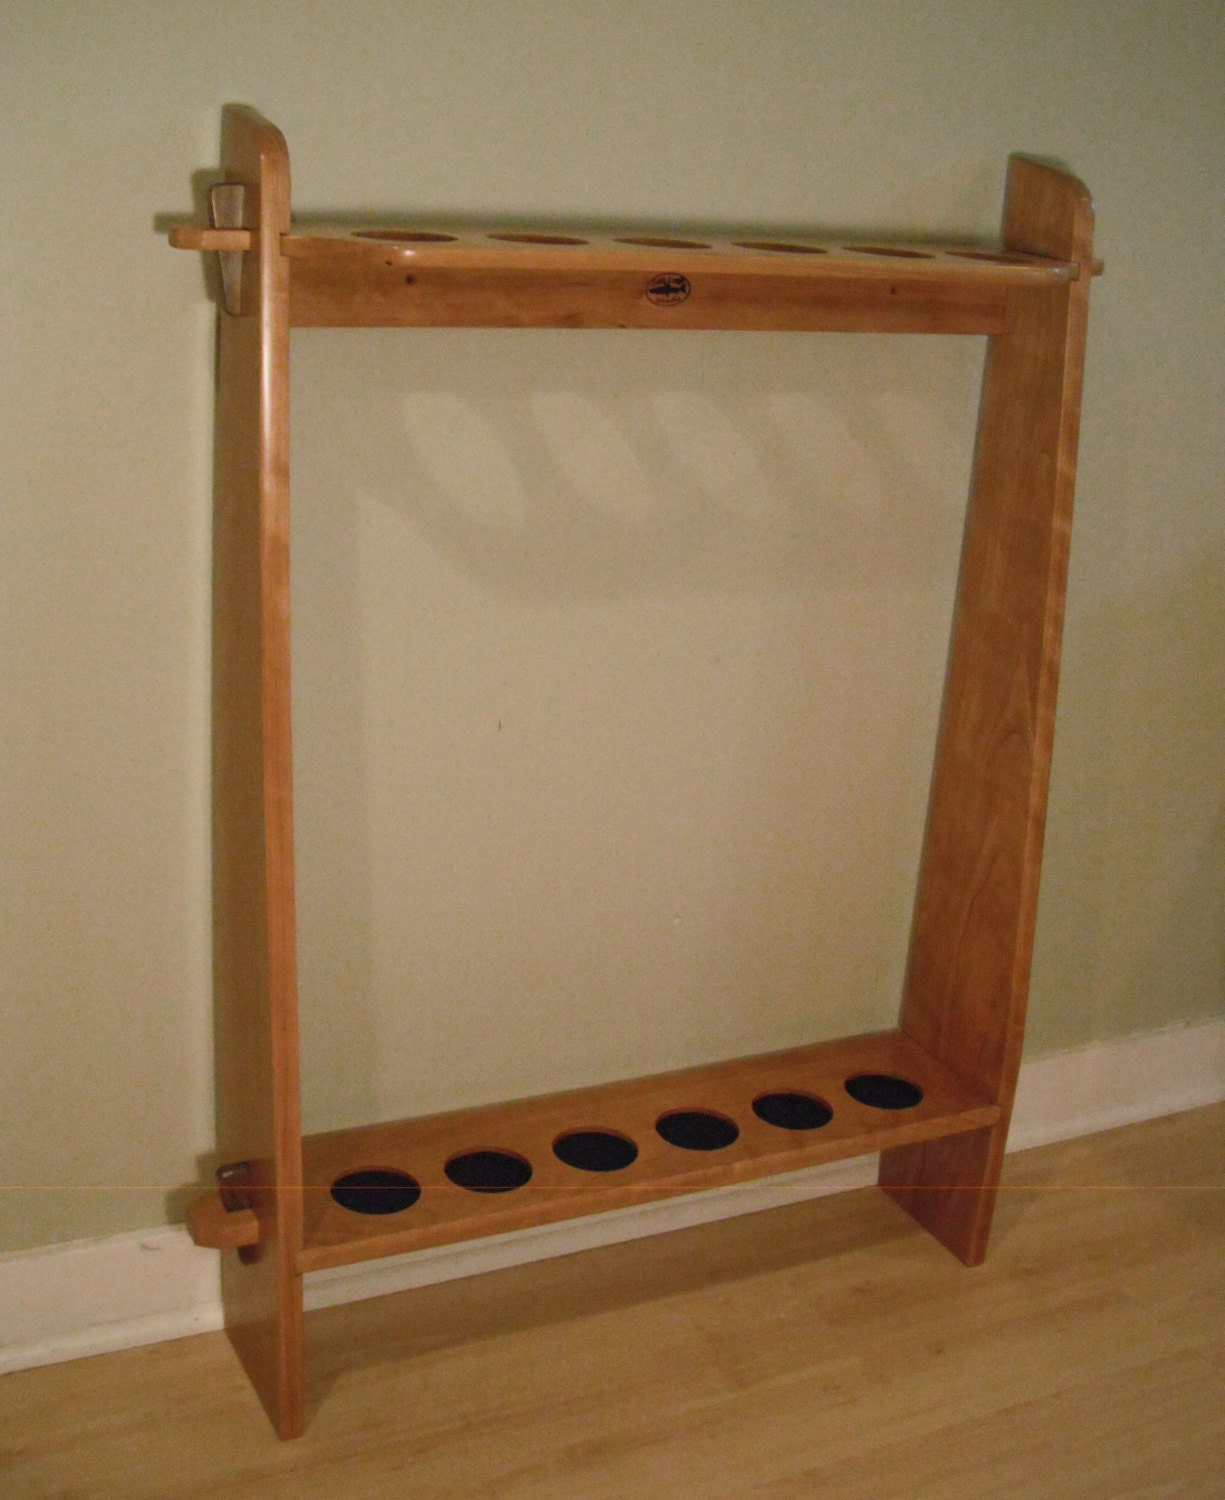 Fly rod tube storage rack 6 position for Fly fishing rod holder